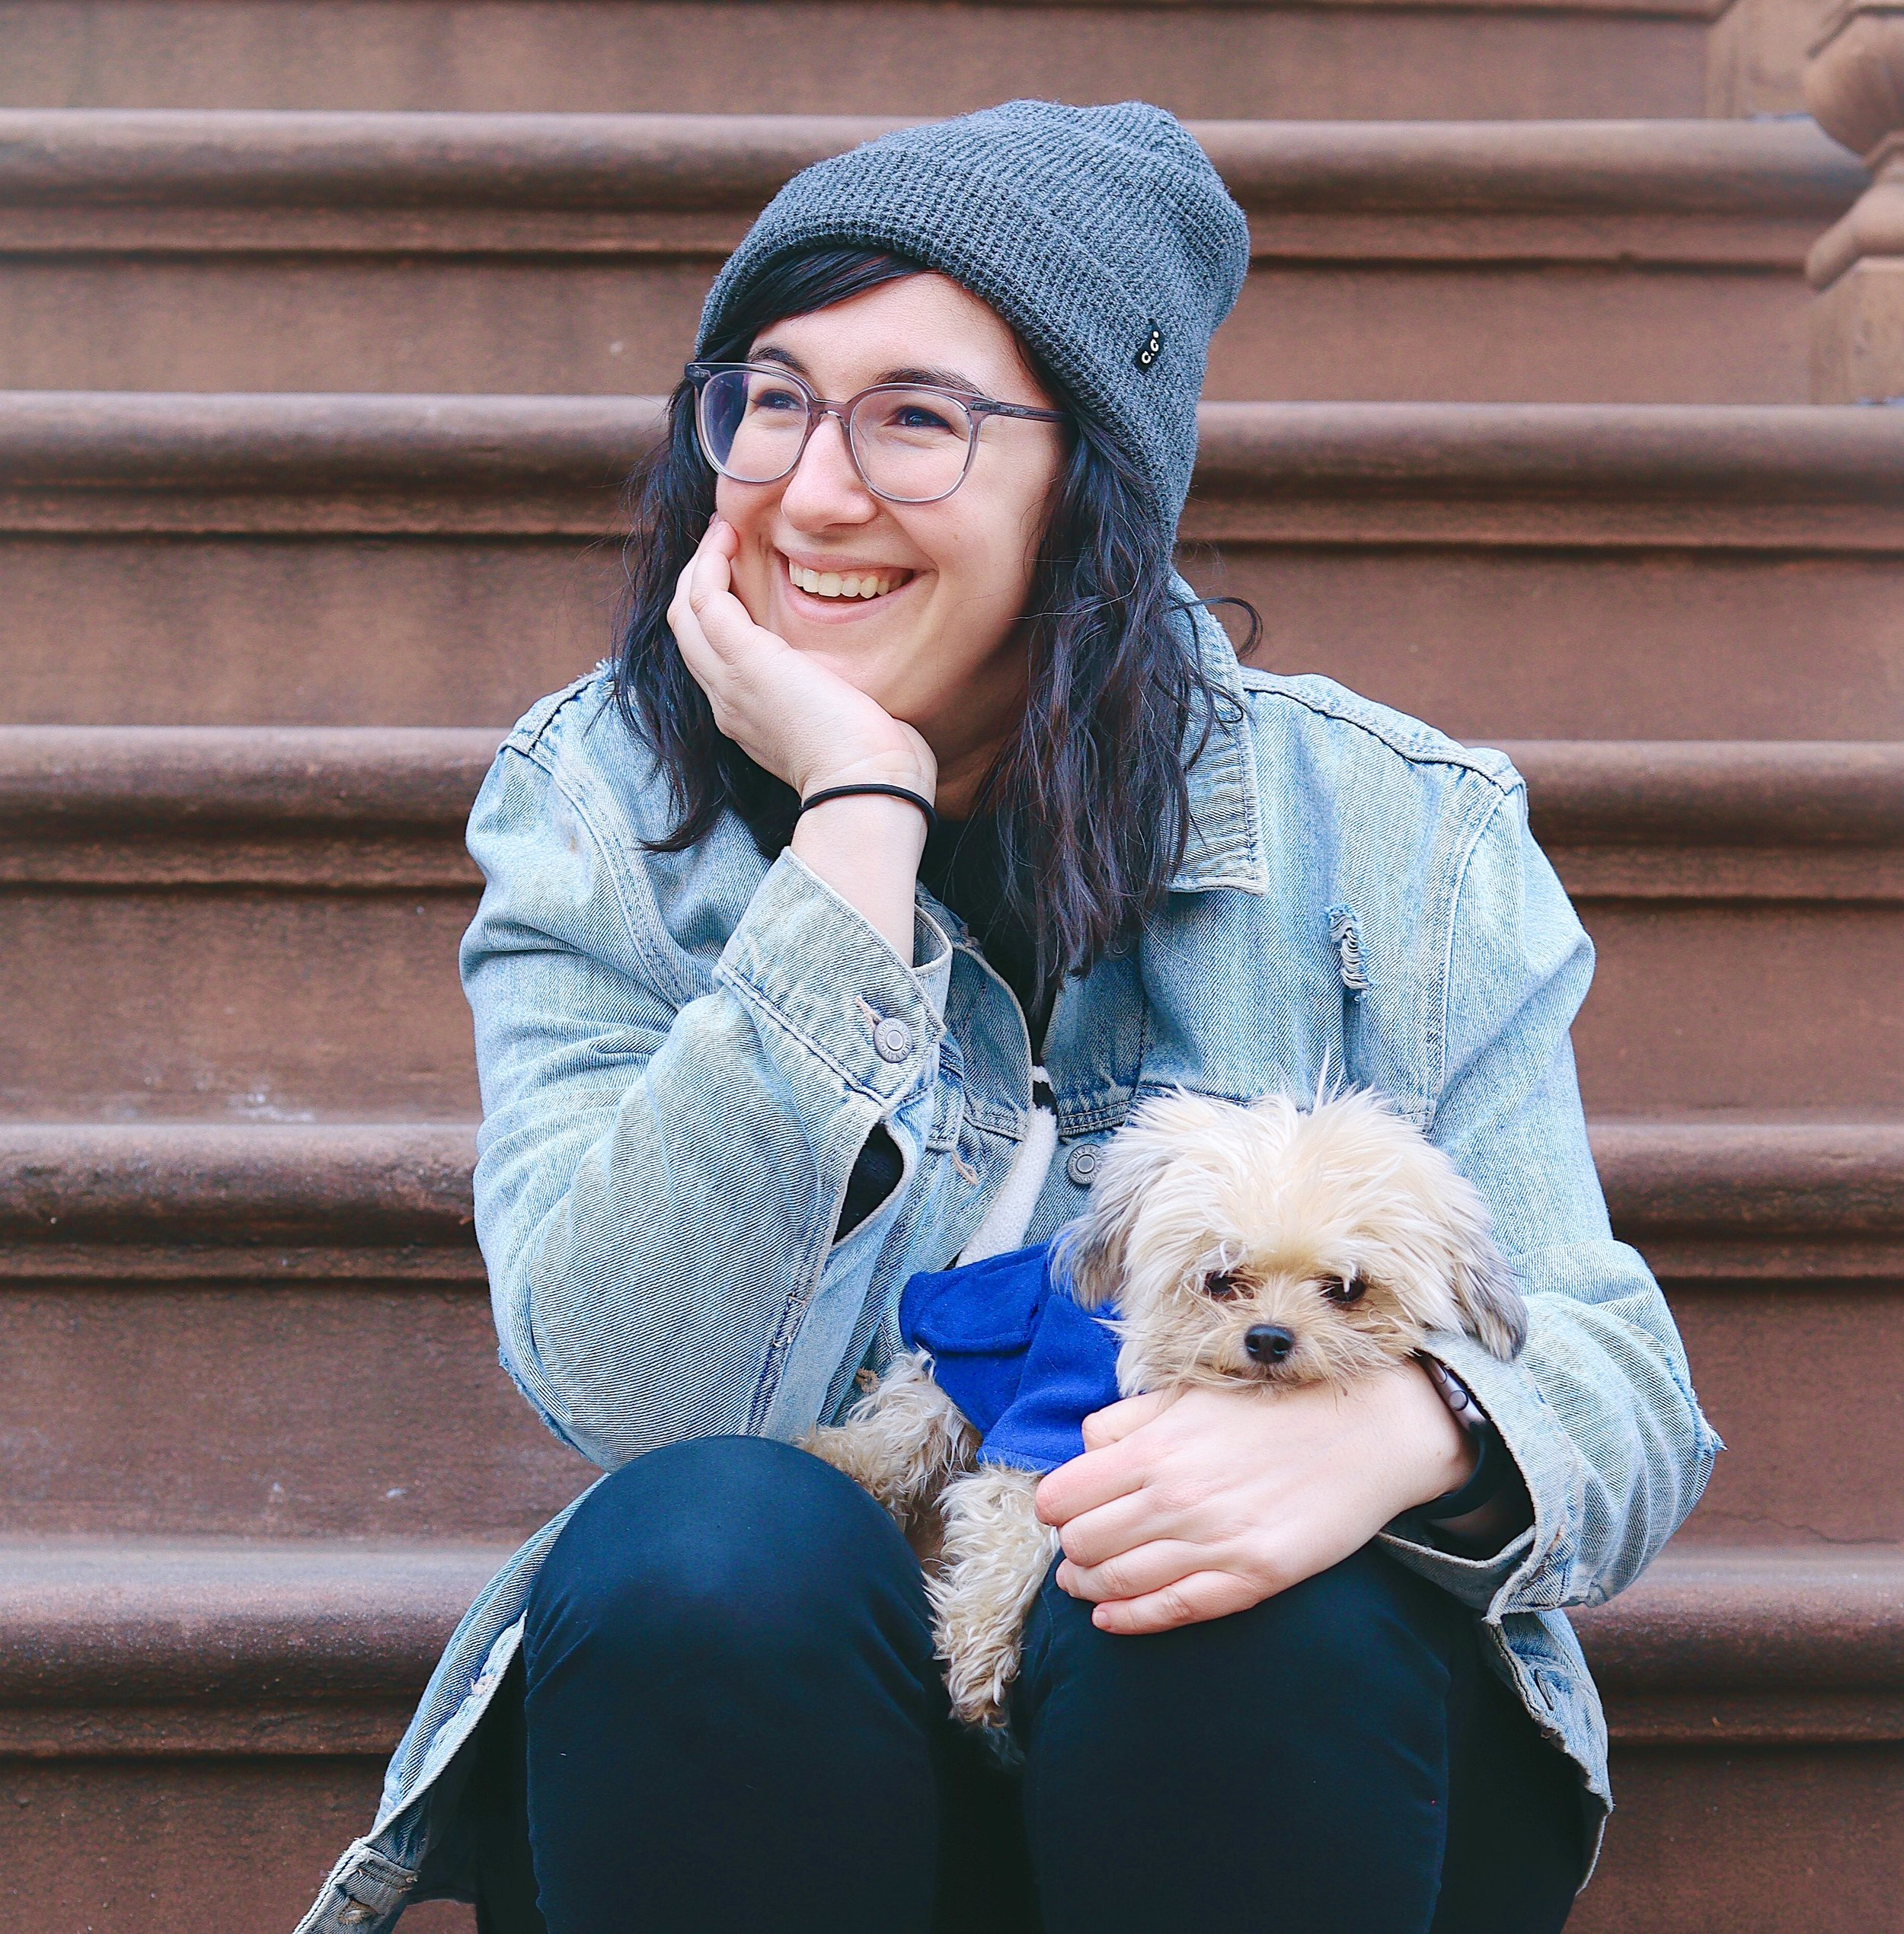 MEl Rubin - Melanie Rubin is an improviser, beatboxer and Philadelphia Eagles fan based out of New York City. Mel has been beatboxing since 2005, improvising since 2015, and dog-momming her pride and joy, Milo, since 2017. You can catch Mel performing Saturdays at the PIT with North Coast and Wednesdays at the Magnet Theater on Megawatt.Milo's Instagram is @milothemiki. This was always about him anyway.